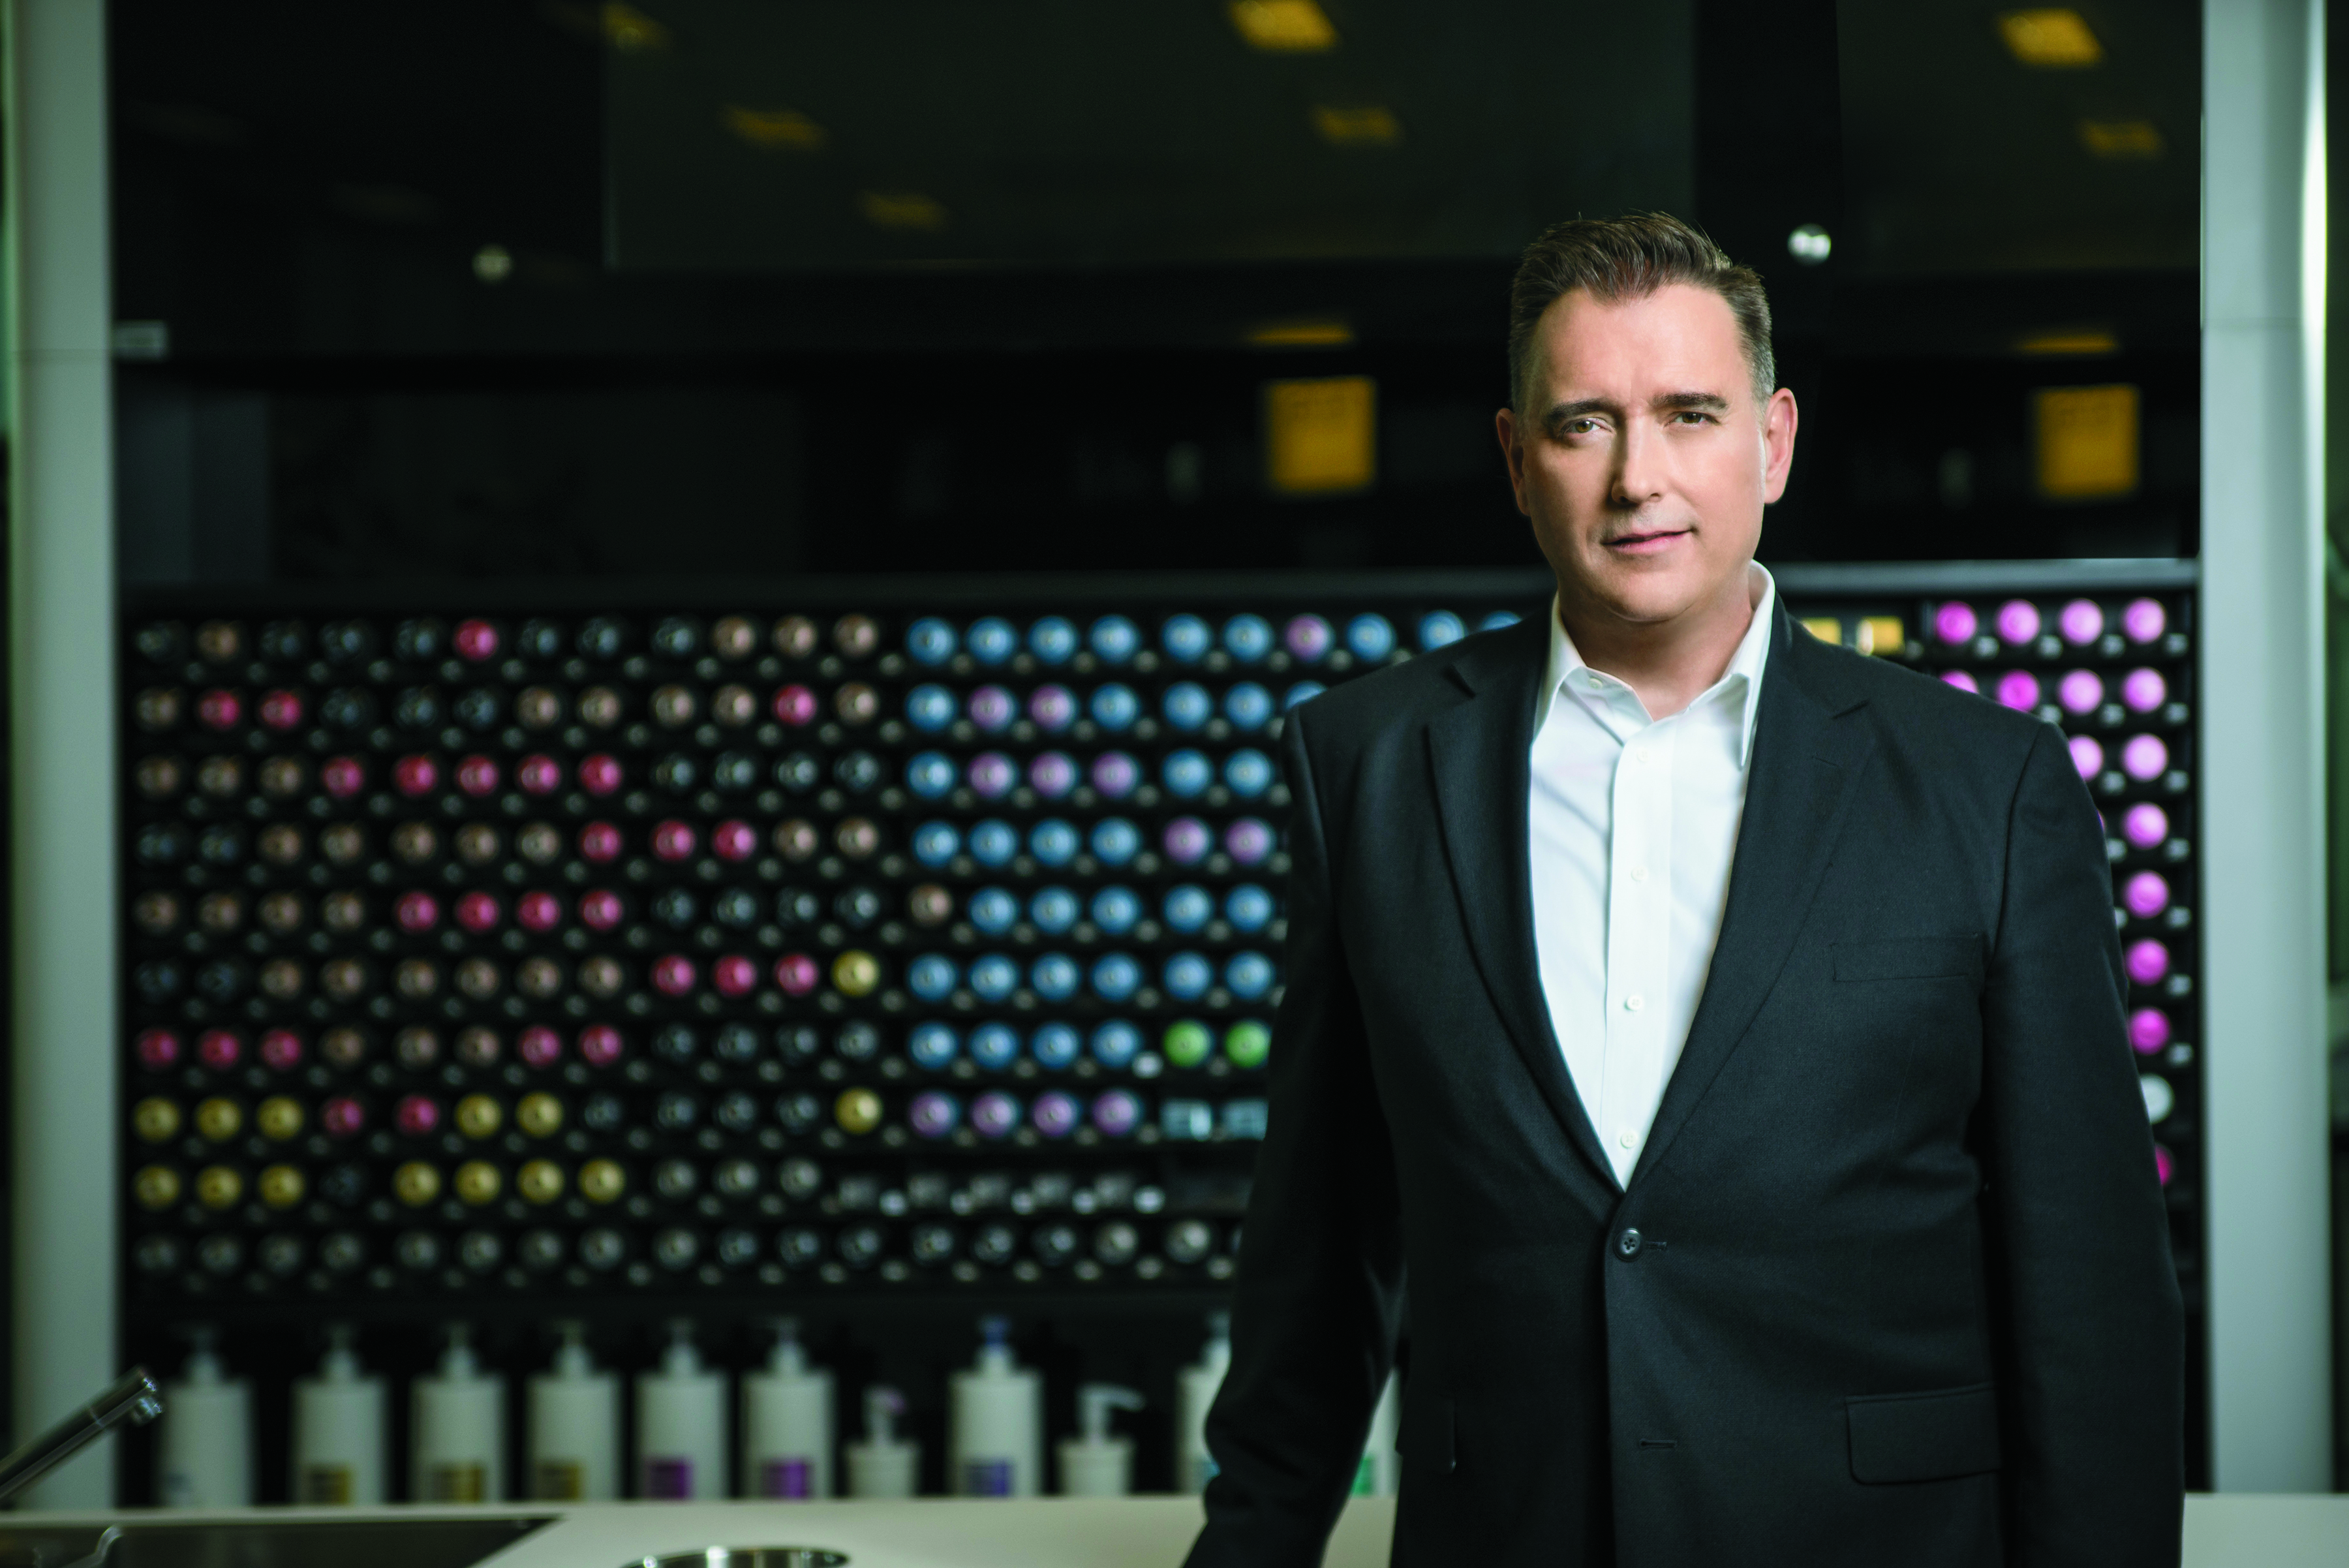 Cory Couts, Global President Kao Salon Division